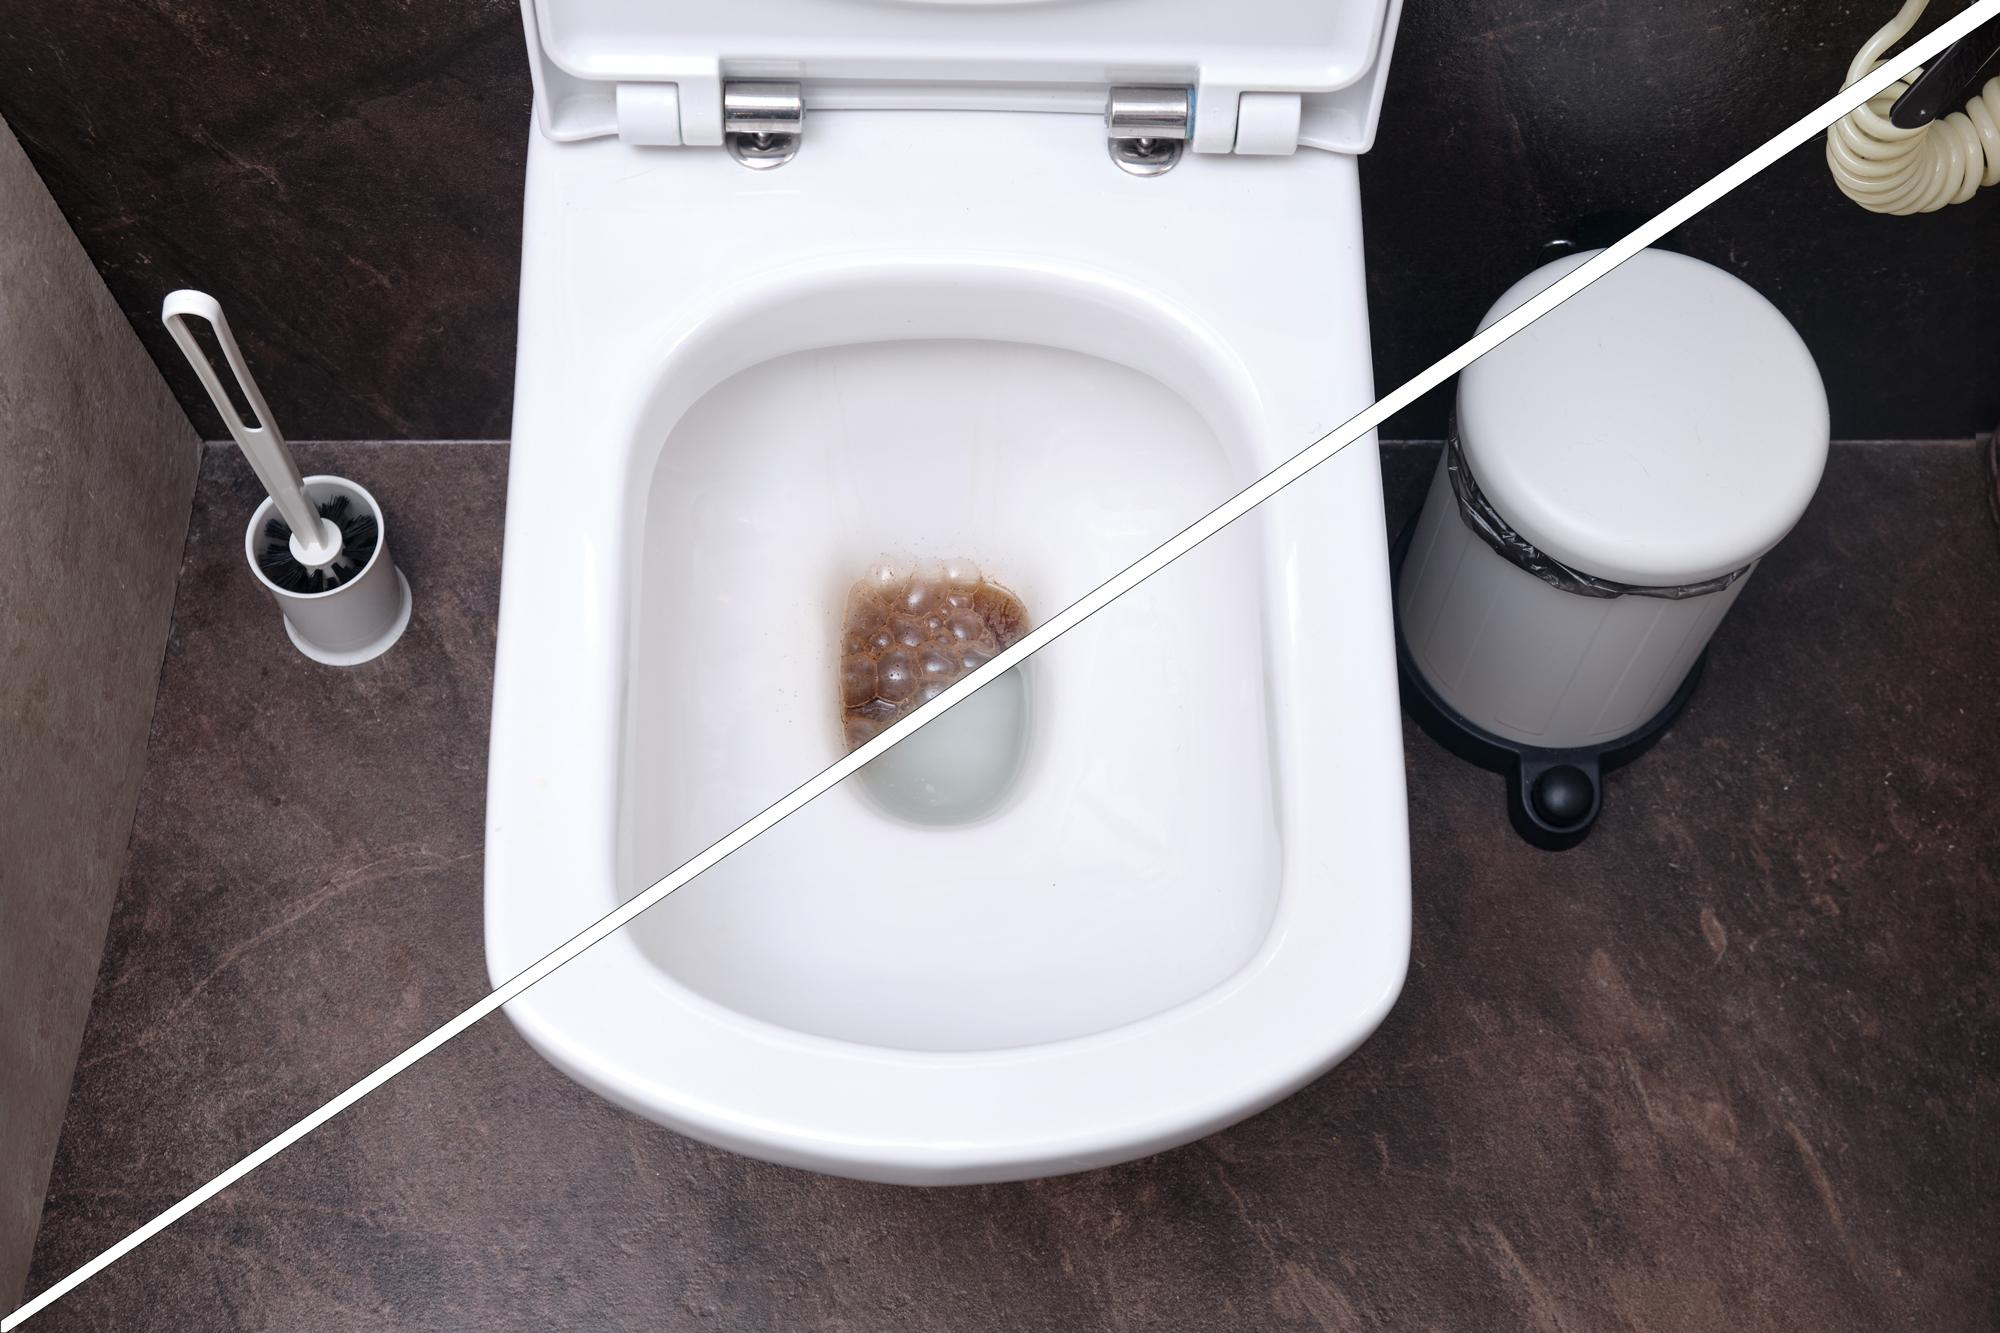 Unclog Toilet near you